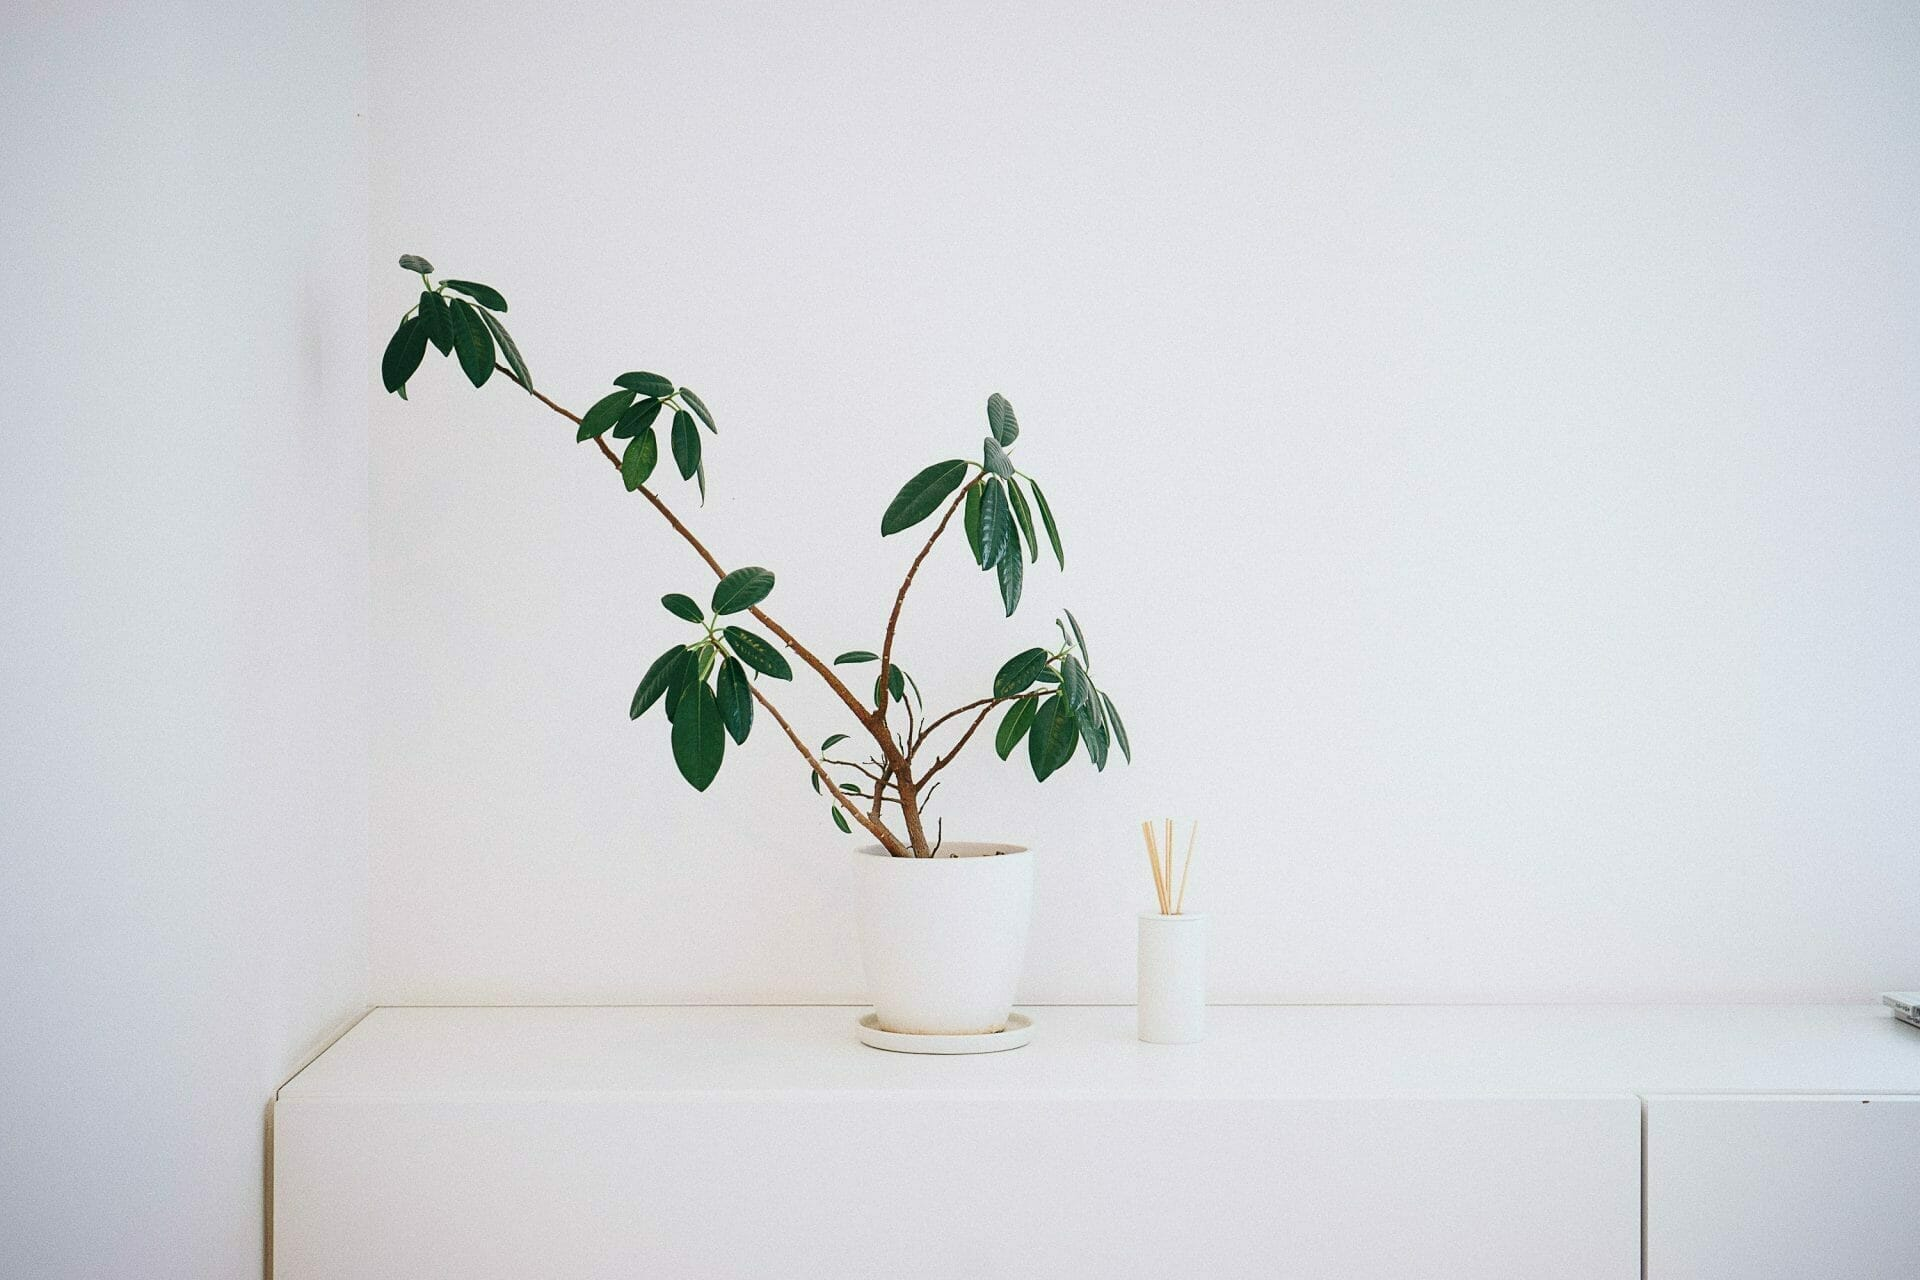 Picture of plant on table for Real Estate News for Investors Podcast Episode #780